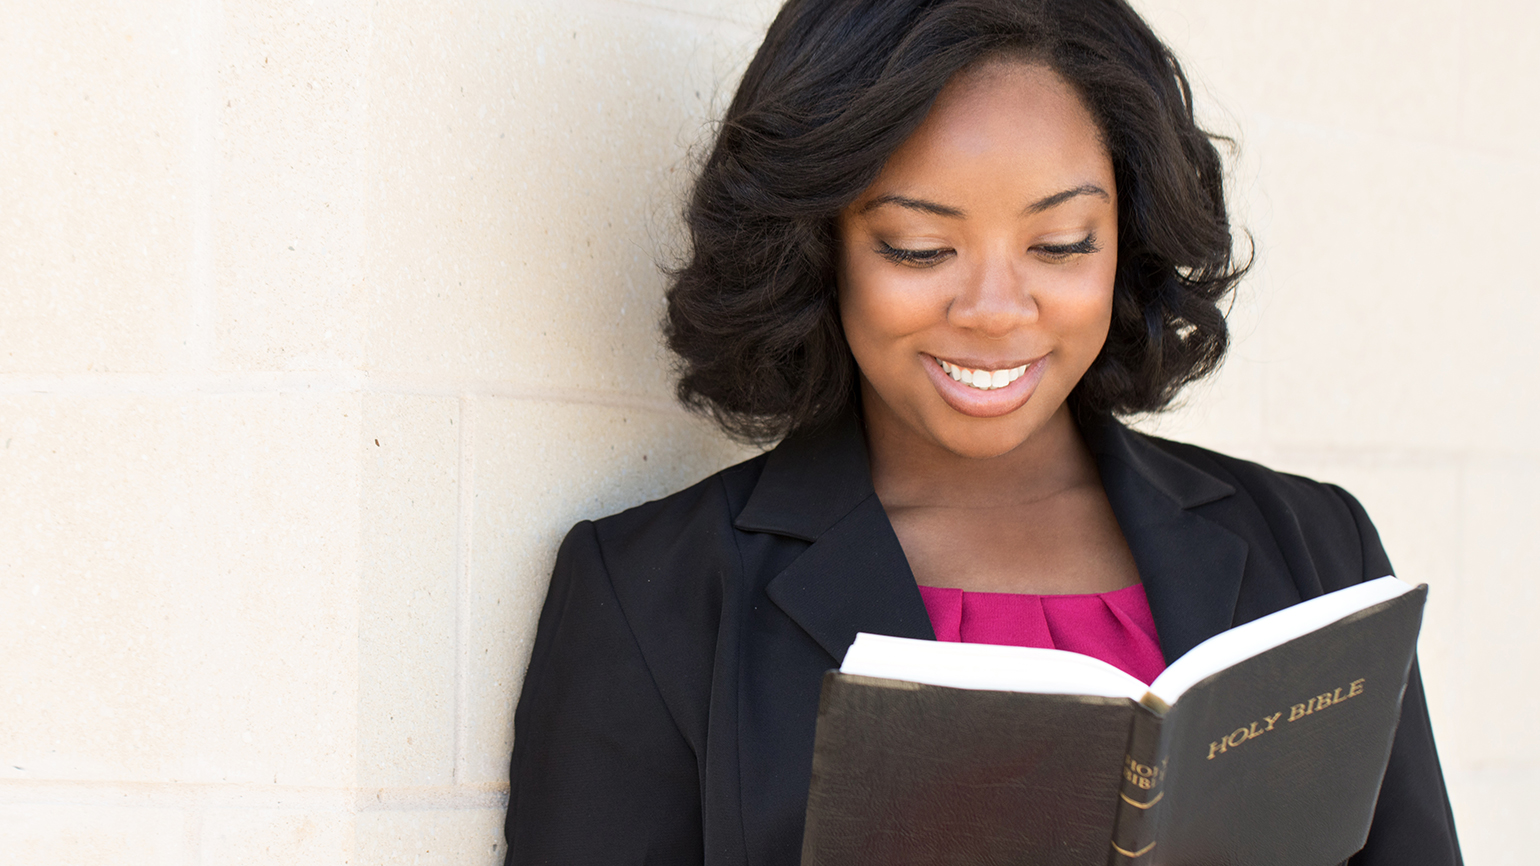 A smiling woman reads her Bible